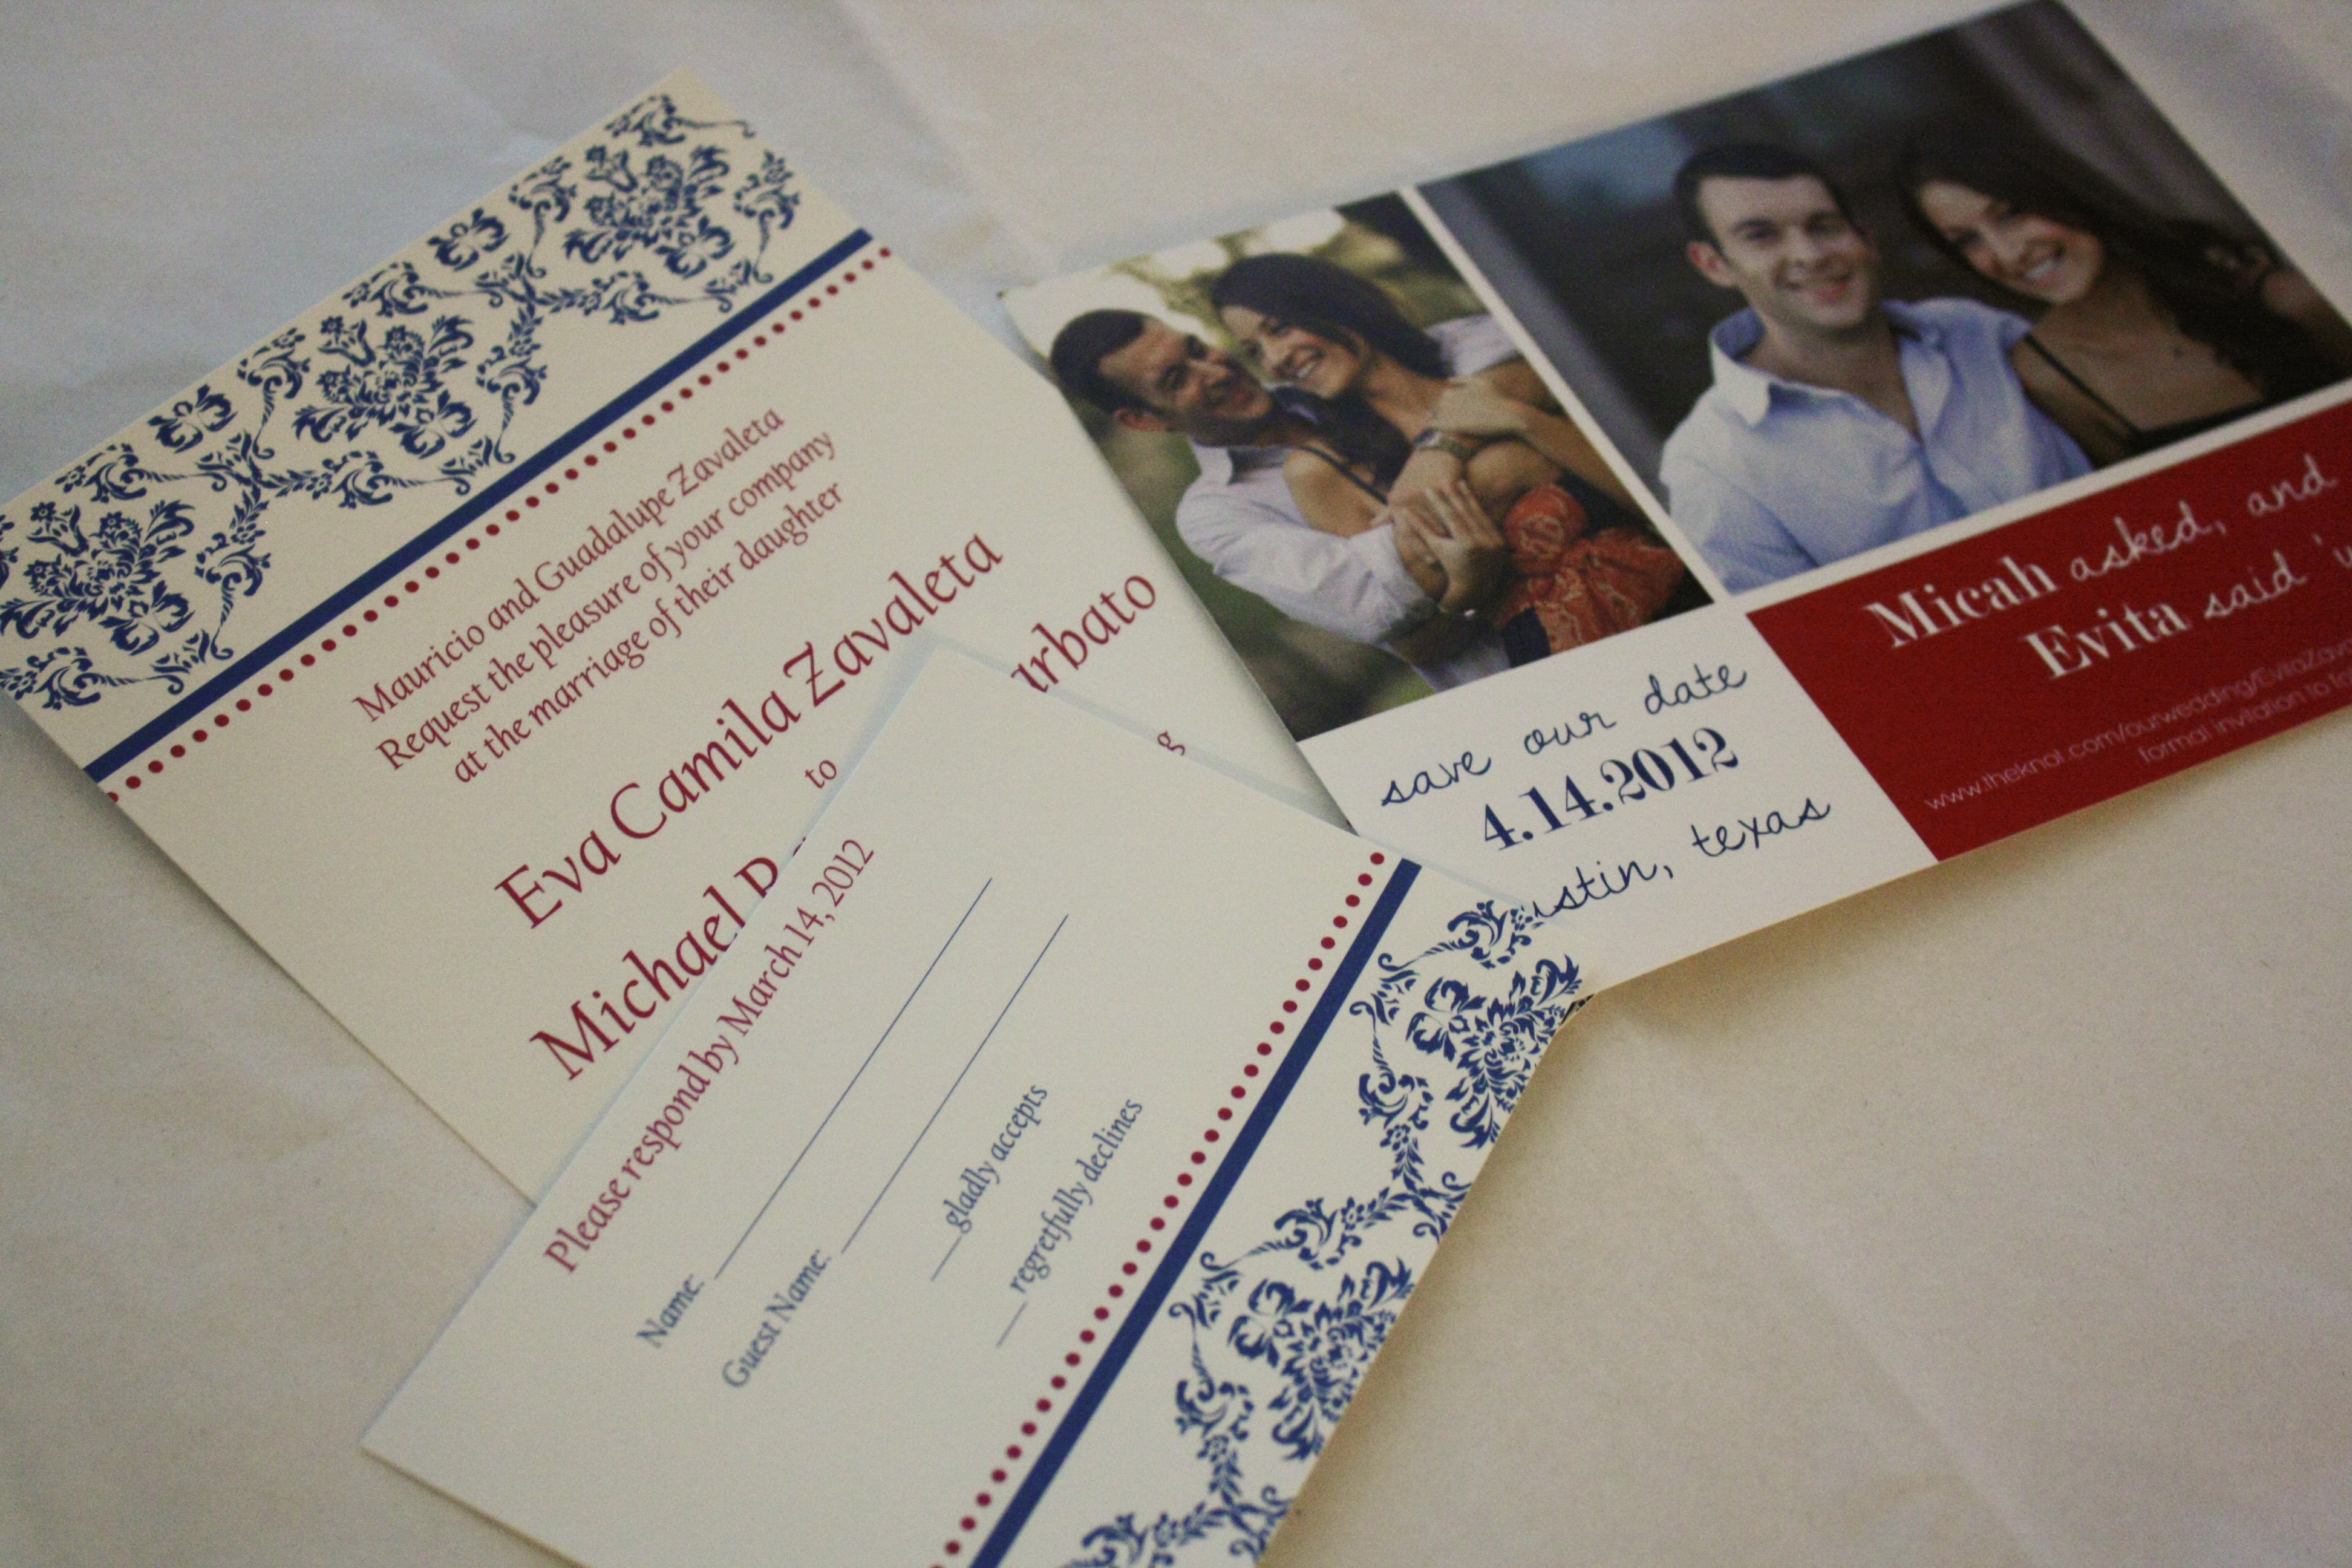 Here is the save the date wedding invitation and reply card